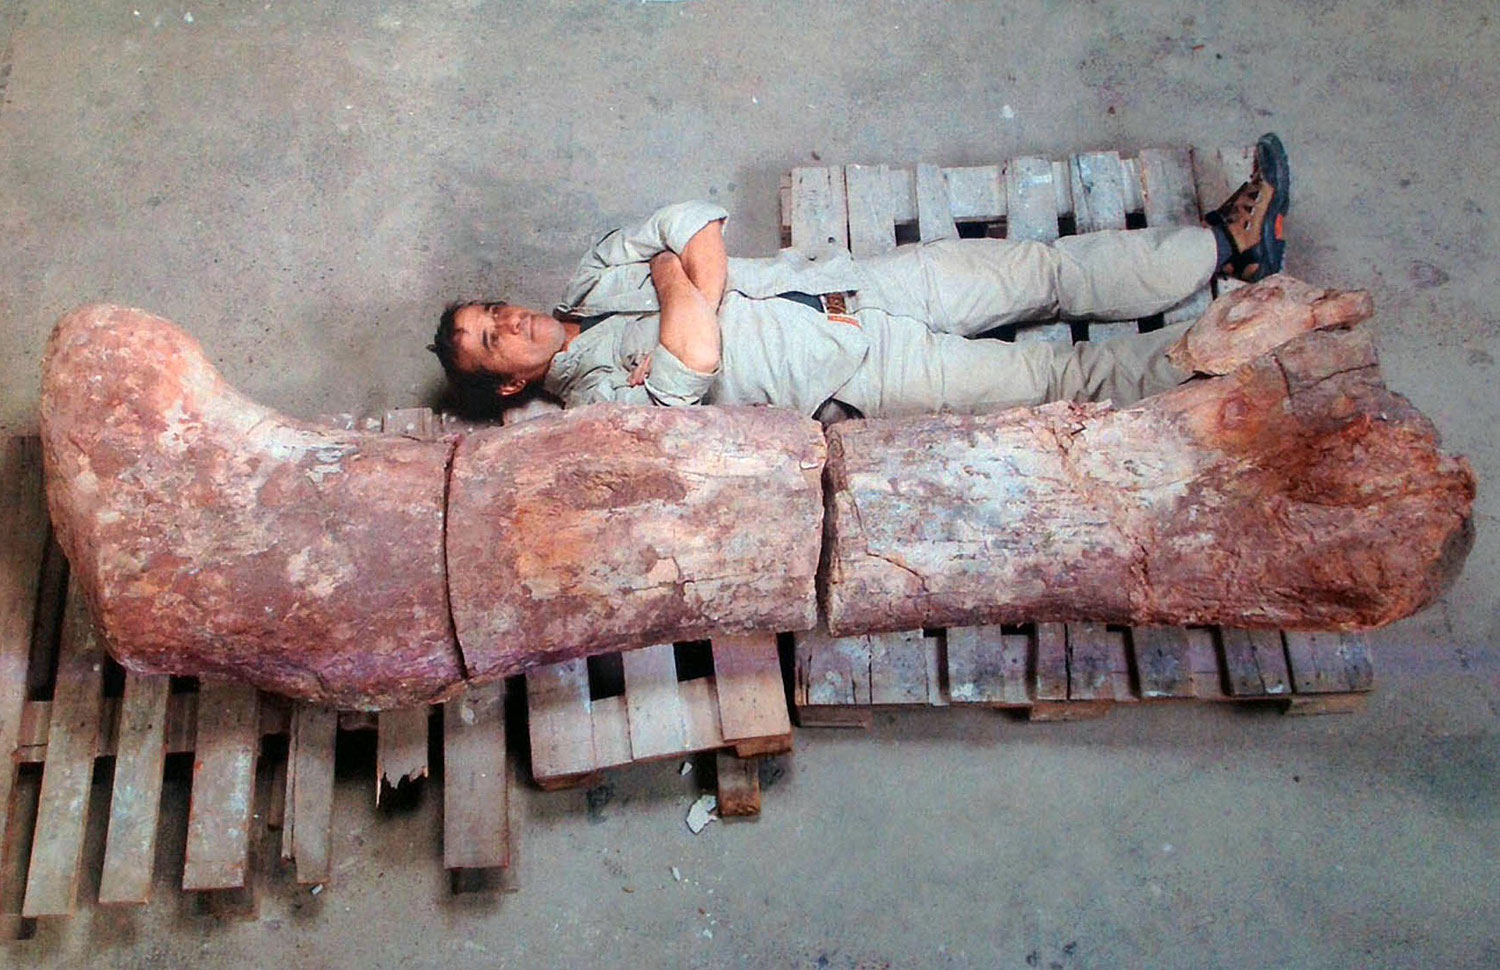 A technician lays next to the femur of a dinosaur -- likely to be the largest ever to roam the earth, in Rawson, Chubut, some 1,300 kilometers (800 miles) south of Buenos Aires, May 16, 2014.